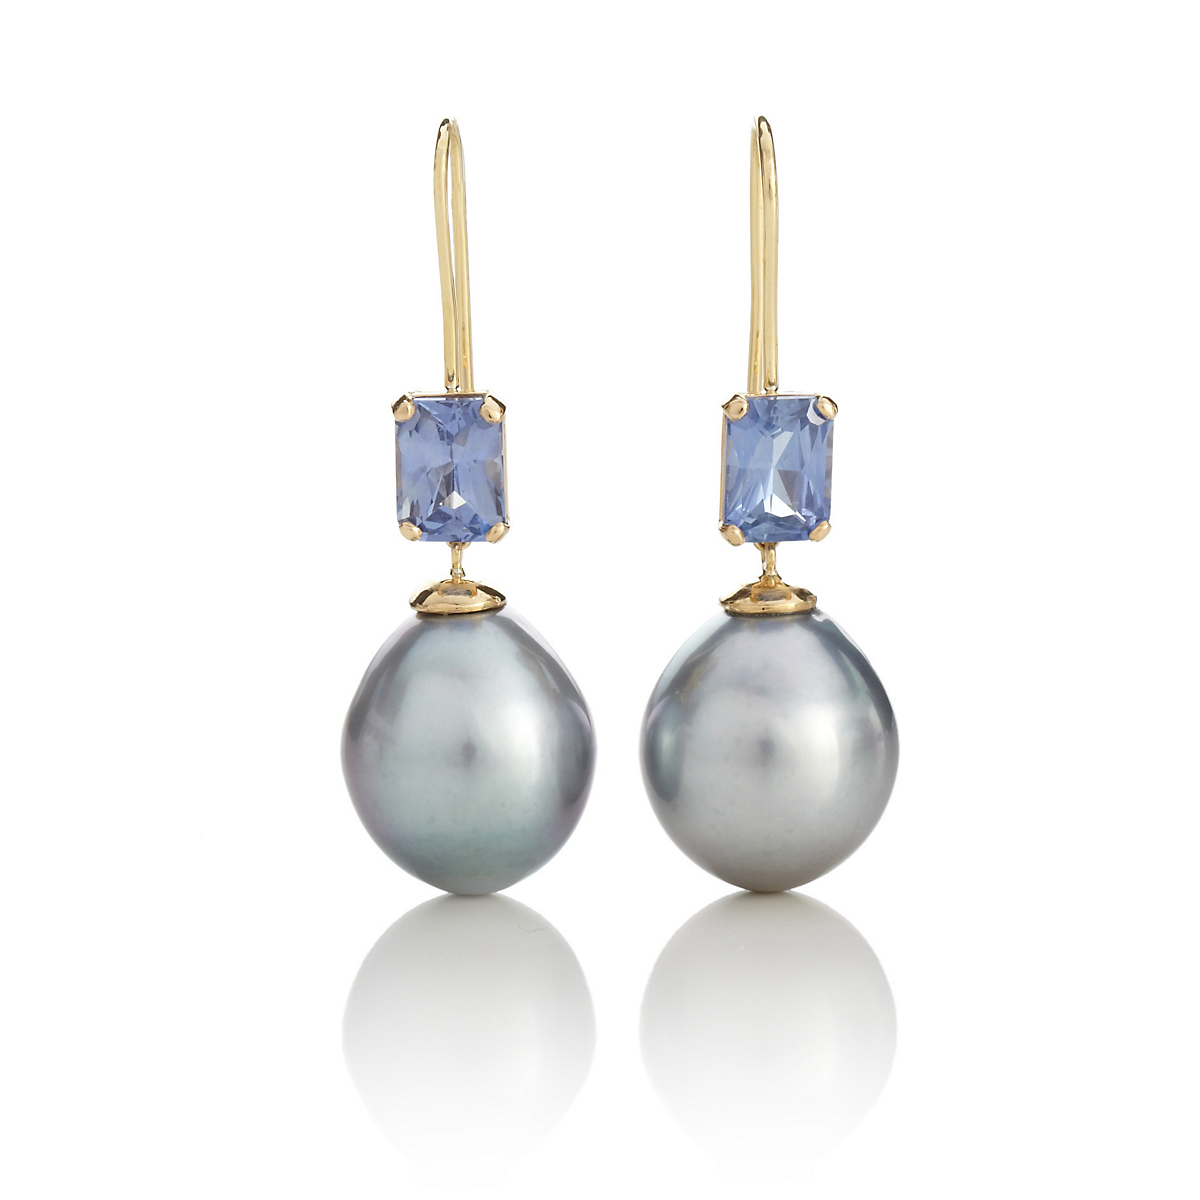 Gump's Tahitian Cultured Pearl & Sapphire Drop Earrings